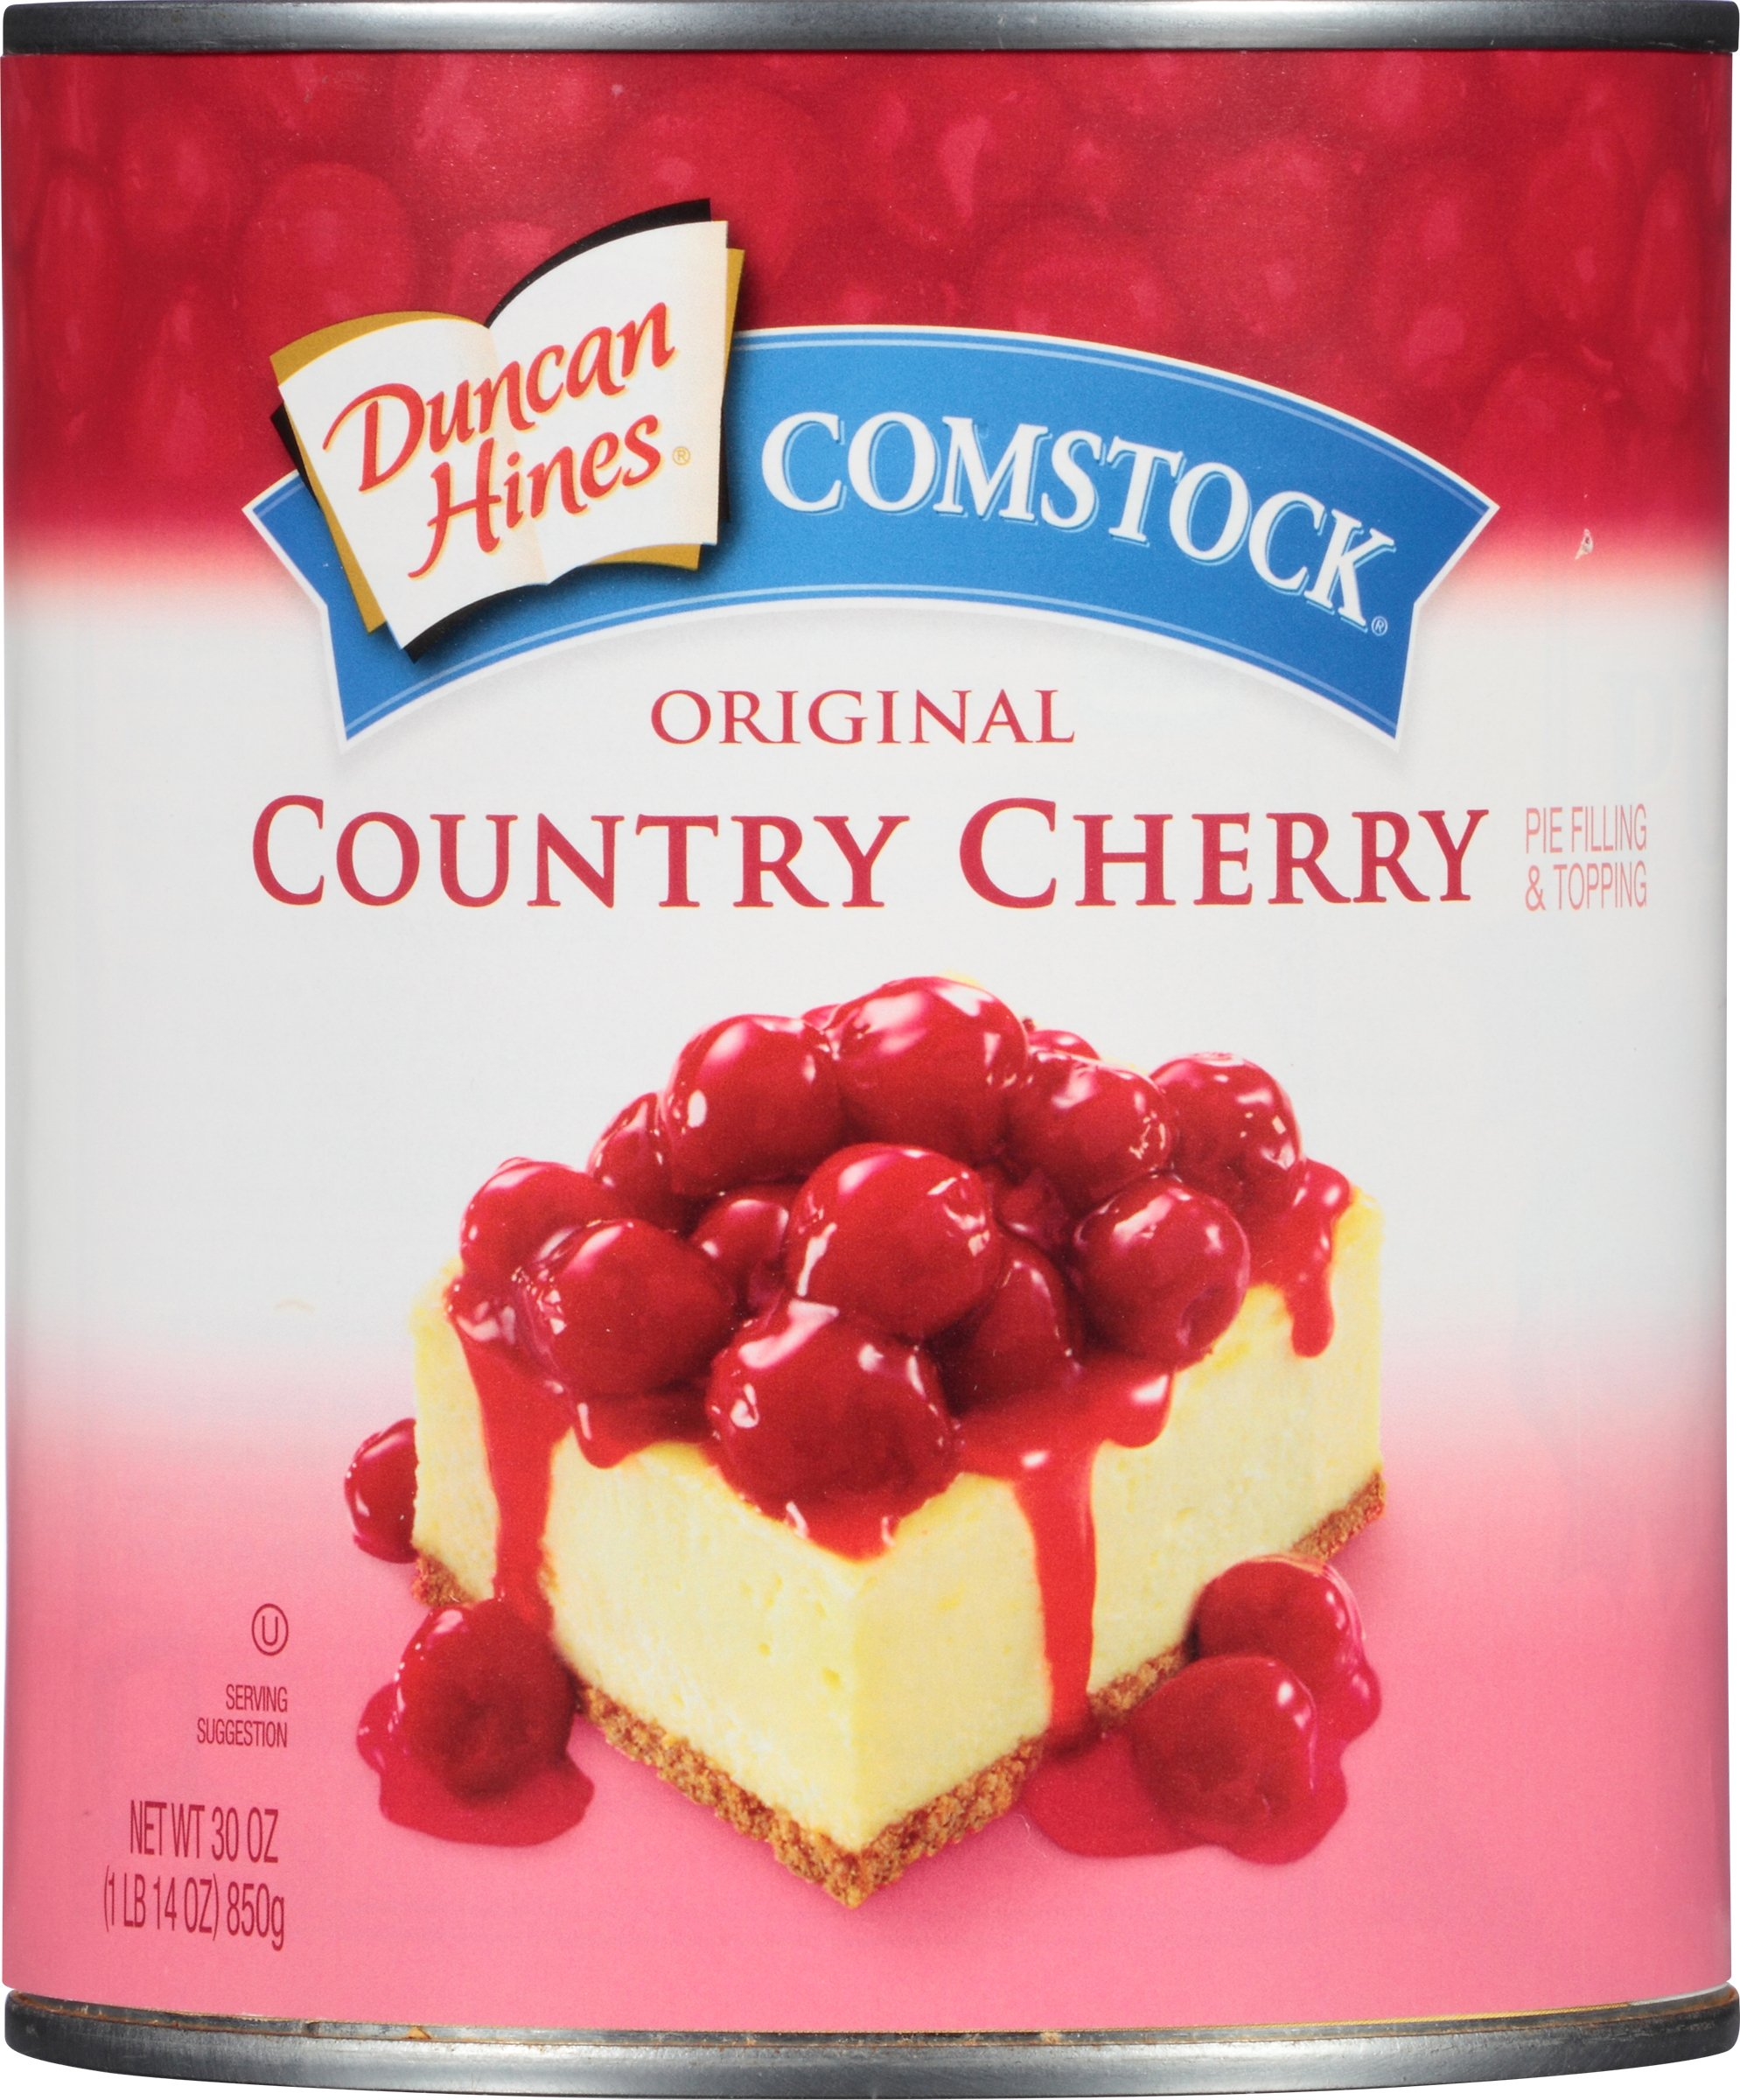 Comstock Original Pie Filling & Topping, Country Cherry, 30 Ounce (Pack of 12)